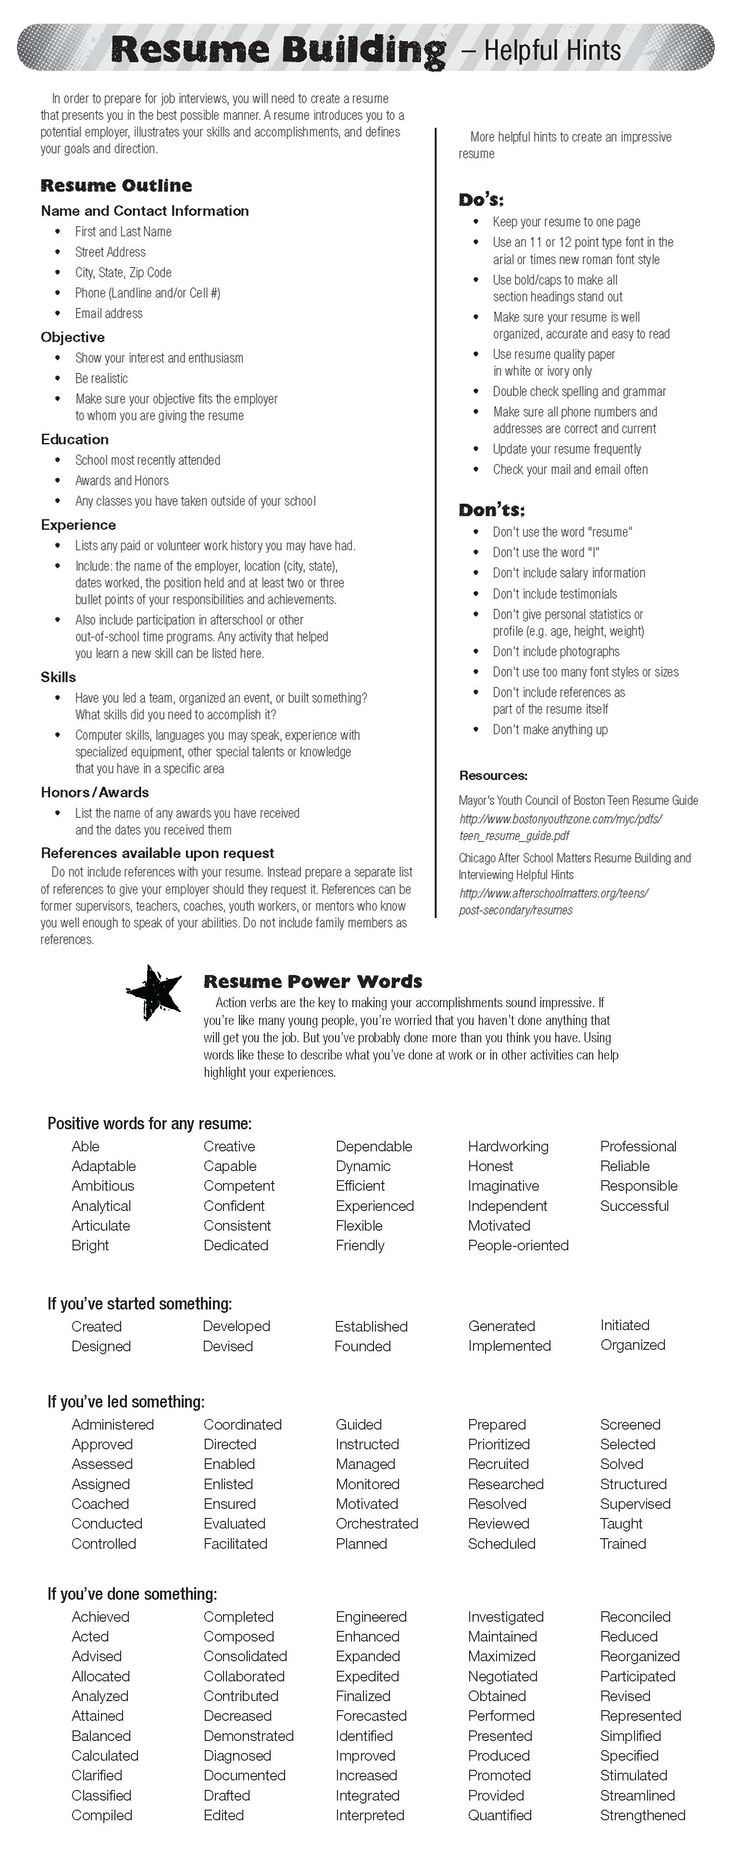 Opposenewapstandardsus  Terrific  Ideas About Resume On Pinterest  Cv Format Resume Cv And  With Heavenly  Ideas About Resume On Pinterest  Cv Format Resume Cv And Resume Templates With Extraordinary Resume Editing Services Also Resume Template Microsoft Word  In Addition Resume Download Free And Create Resume For Free As Well As Engineering Resume Objective Additionally Resume Builder Software From Pinterestcom With Opposenewapstandardsus  Heavenly  Ideas About Resume On Pinterest  Cv Format Resume Cv And  With Extraordinary  Ideas About Resume On Pinterest  Cv Format Resume Cv And Resume Templates And Terrific Resume Editing Services Also Resume Template Microsoft Word  In Addition Resume Download Free From Pinterestcom